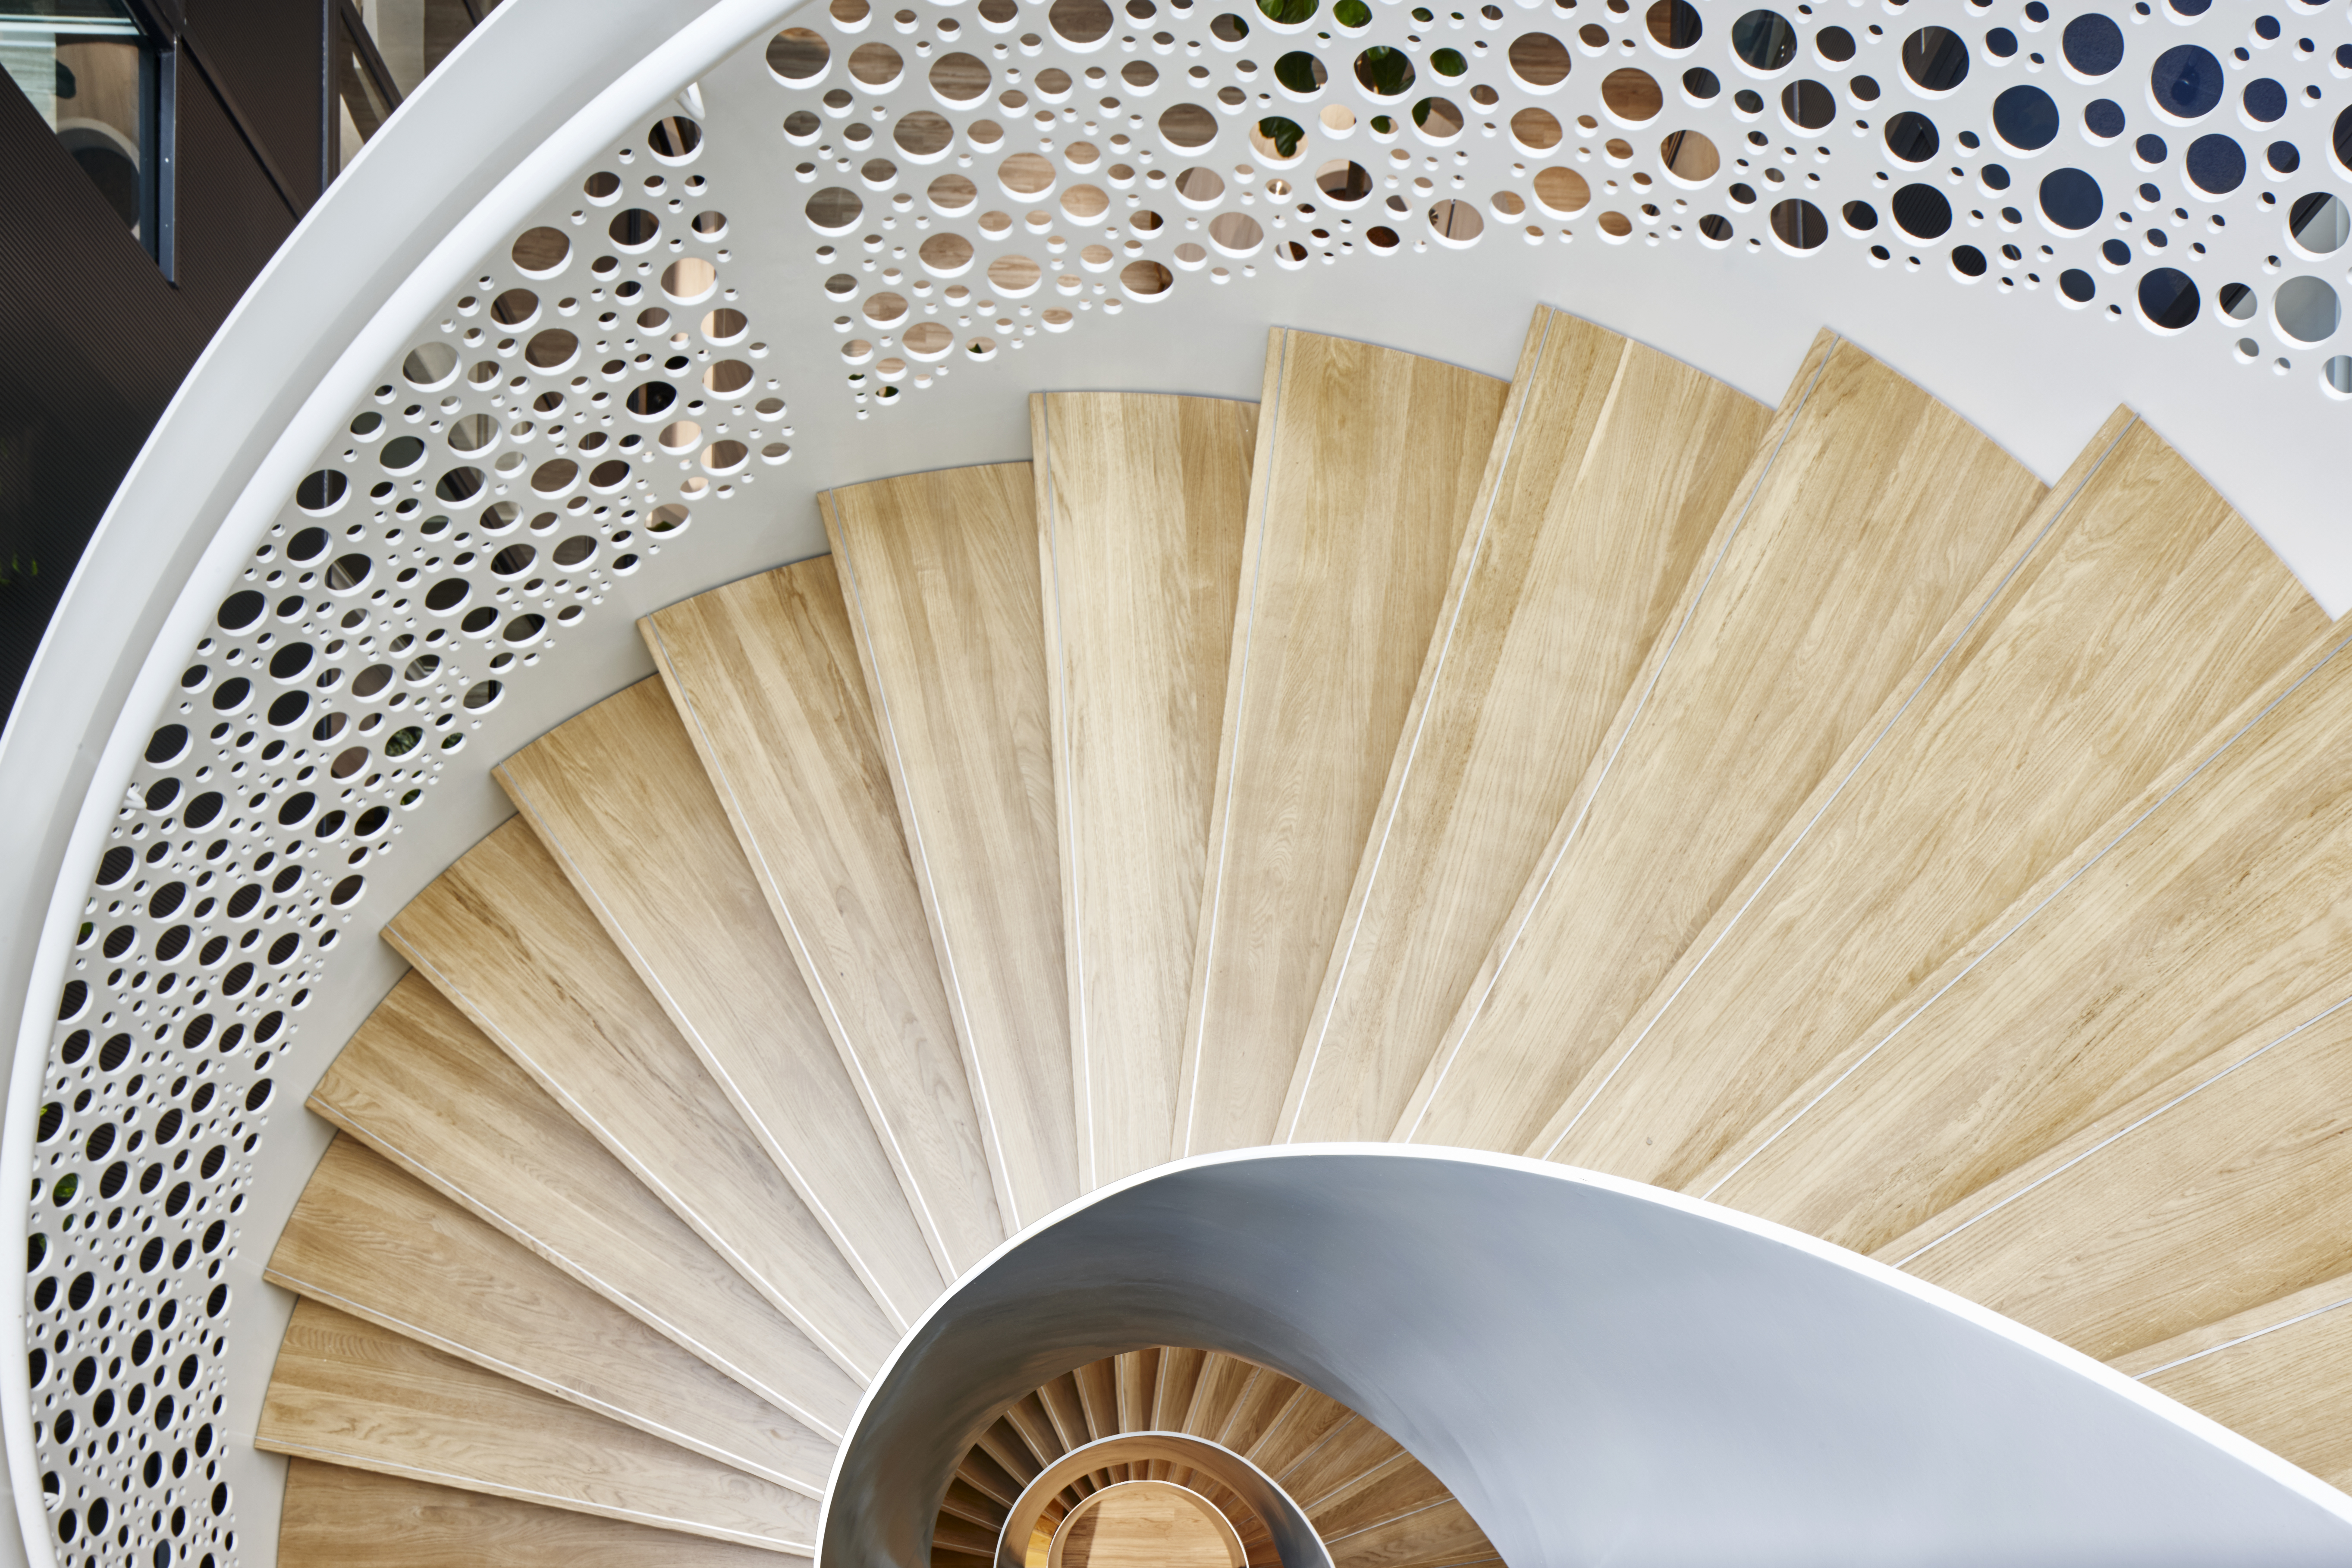 Stairs by M+R interior architecture